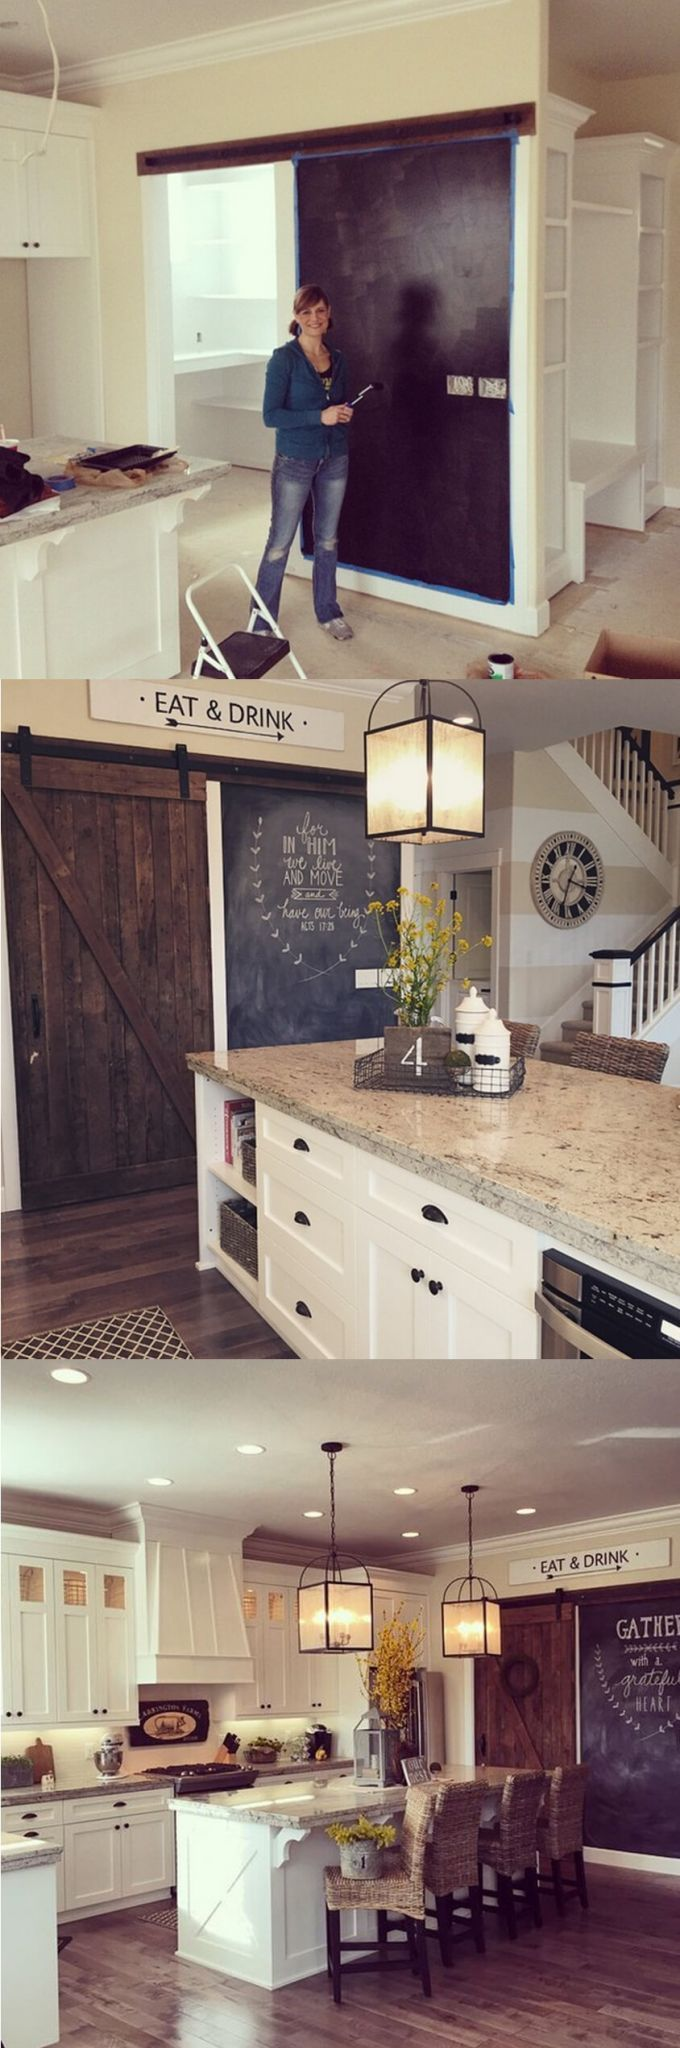 Best 25 Rustic kitchen ideas on Pinterest Country kitchen Farm